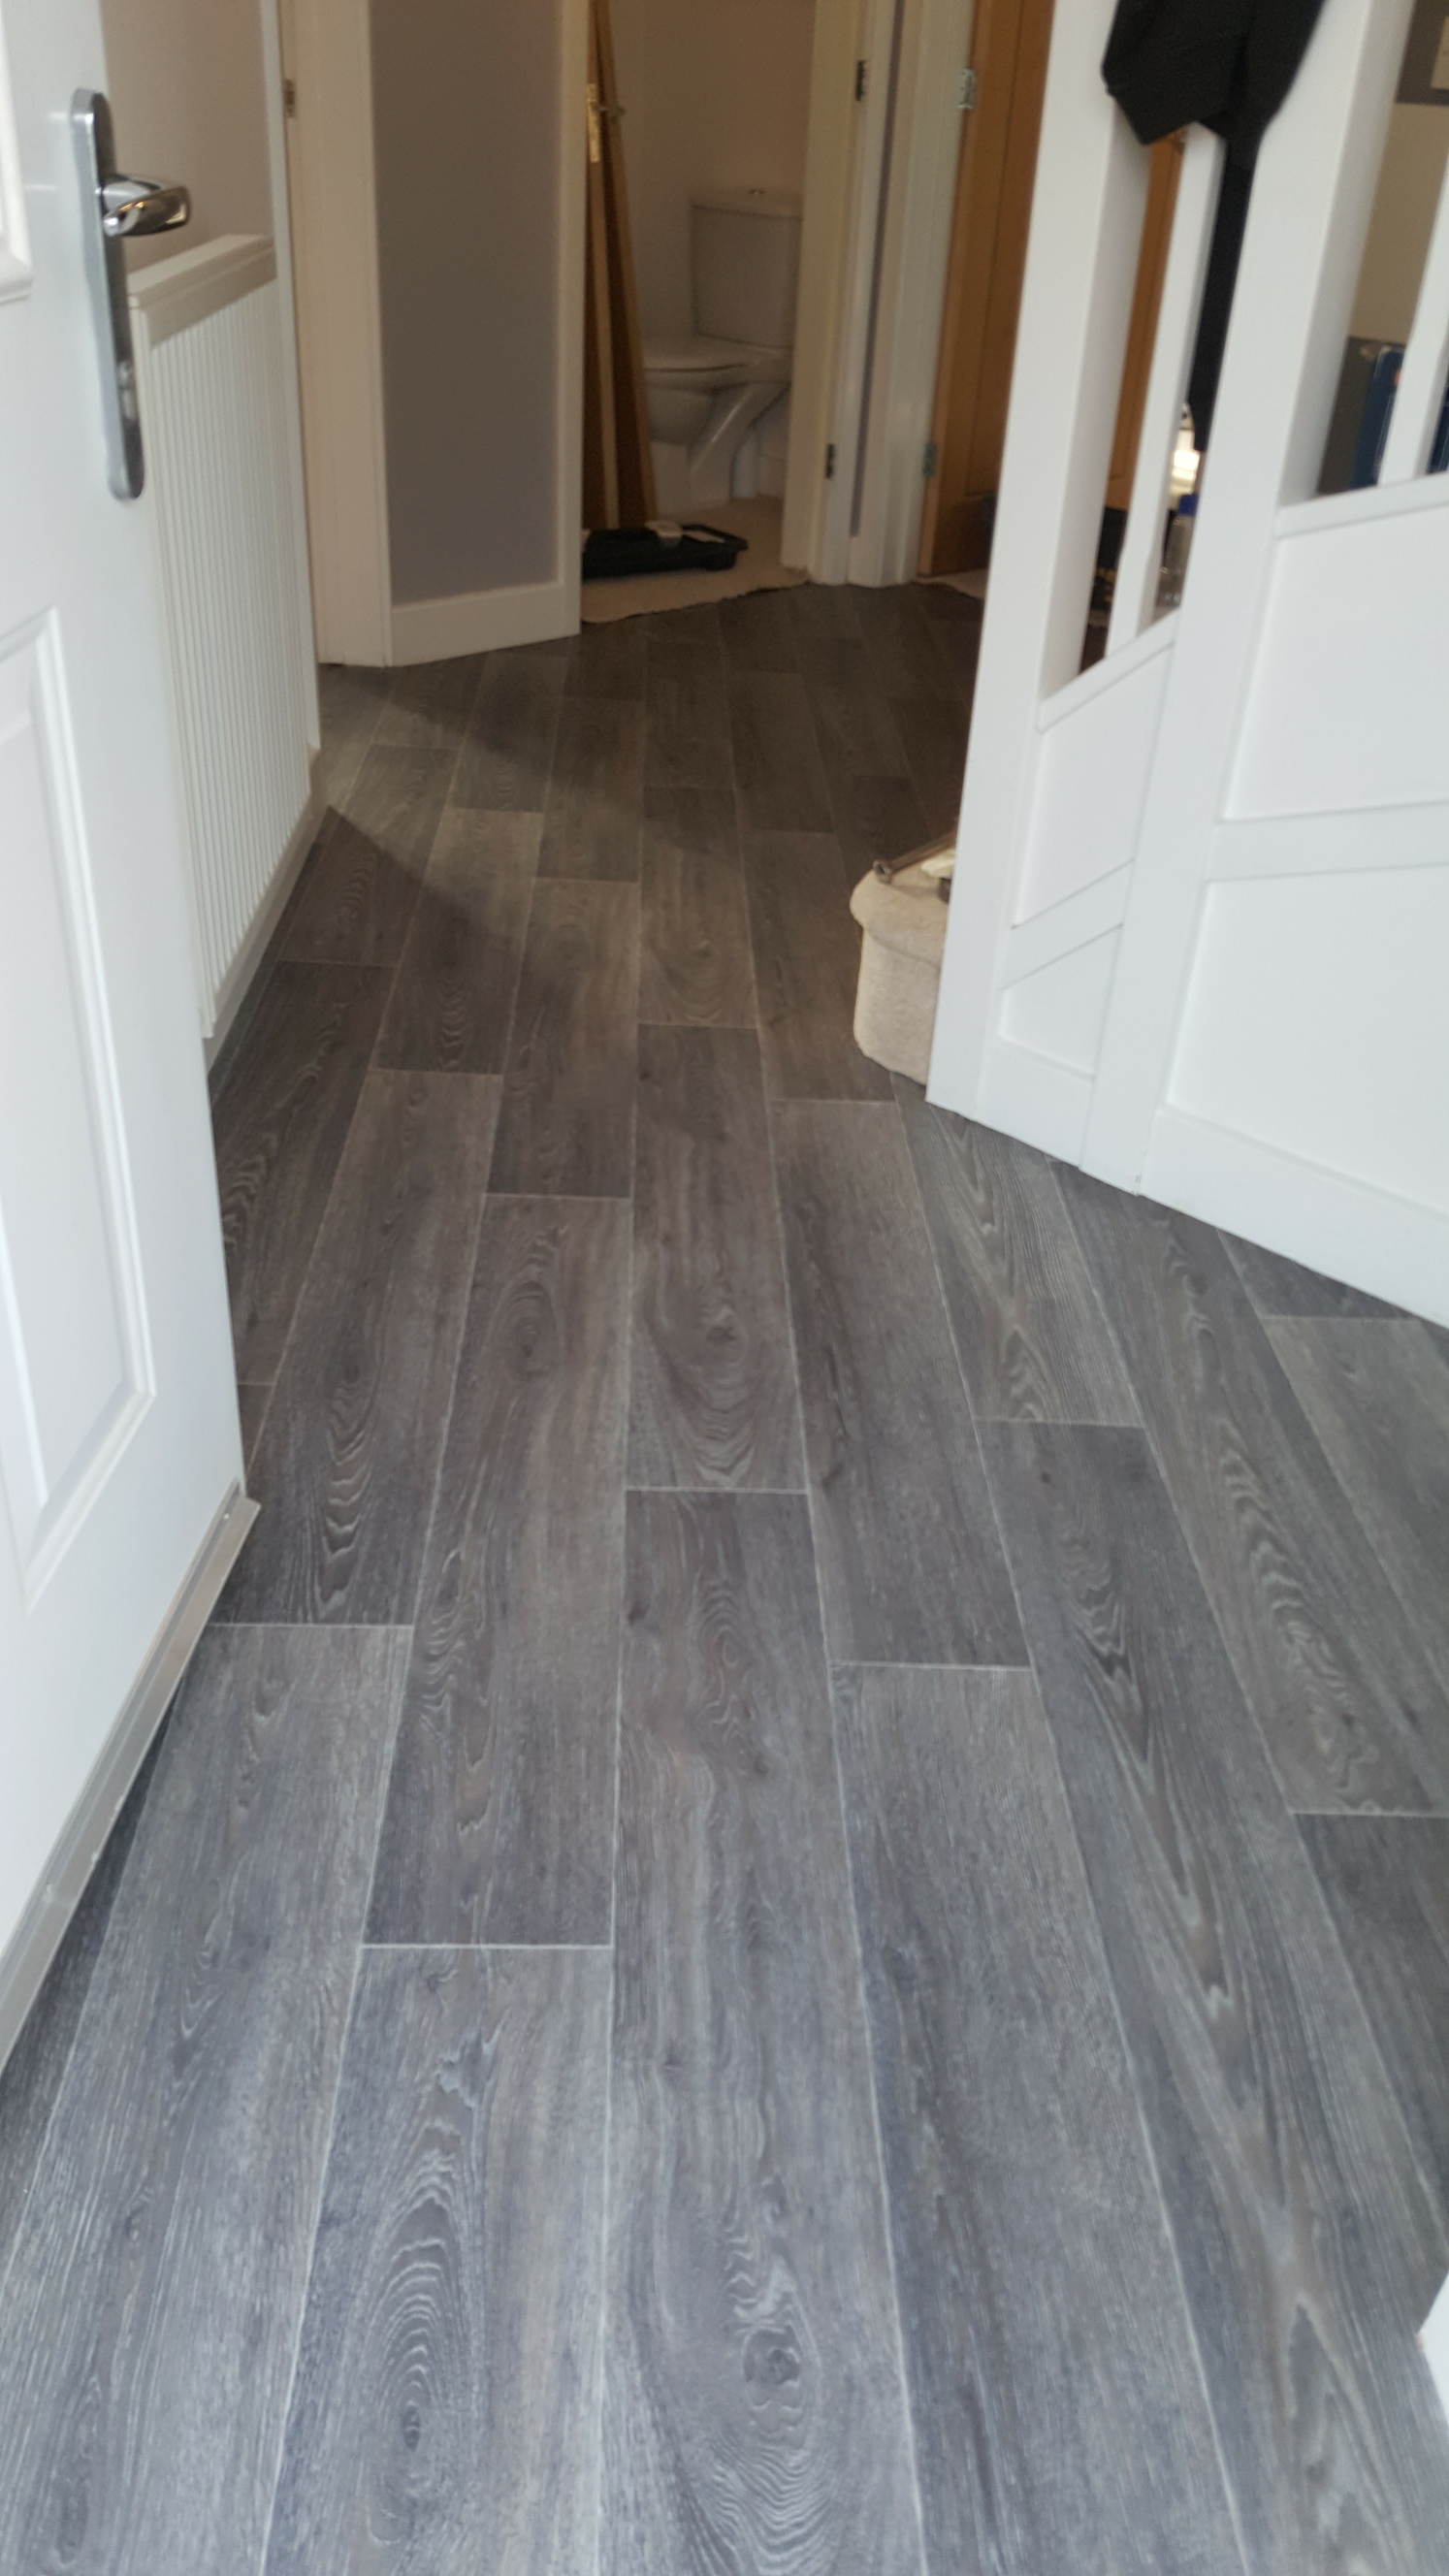 This Heavy Duty Rated Vinyl Flooring Comes With A 25 Year Guarantee